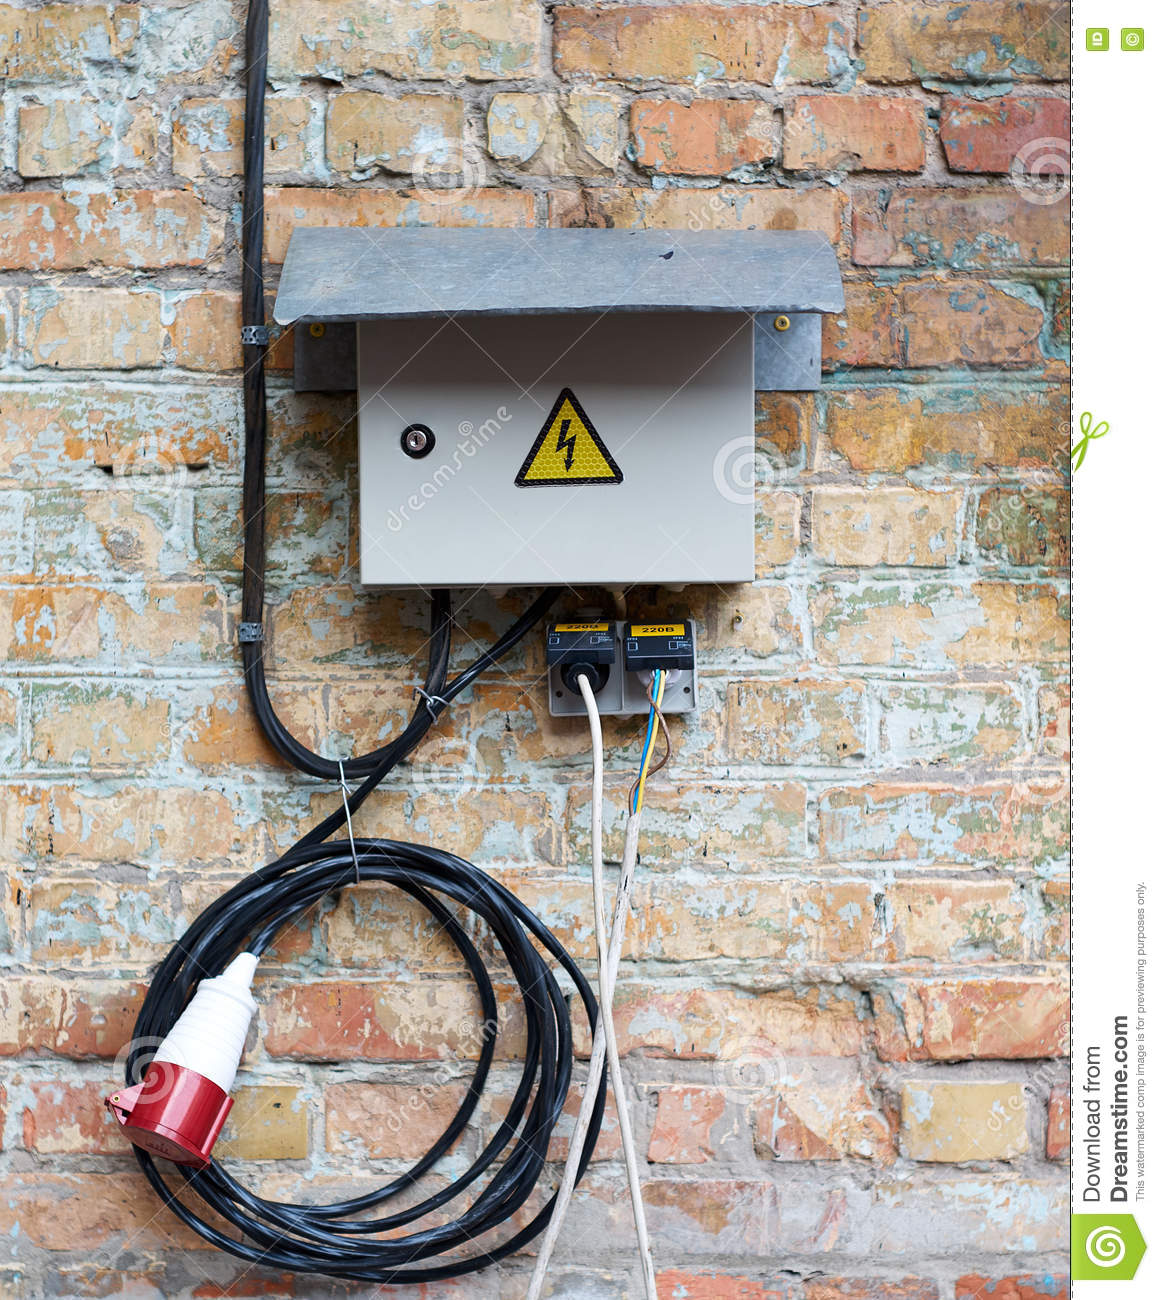 grey electrical box on wall background stock image image of AT&T Network Interface Device Wiring outdoor electric control cabinet for electrical equipment on brick wall with wires and plug jack knife switch on old dirty wall